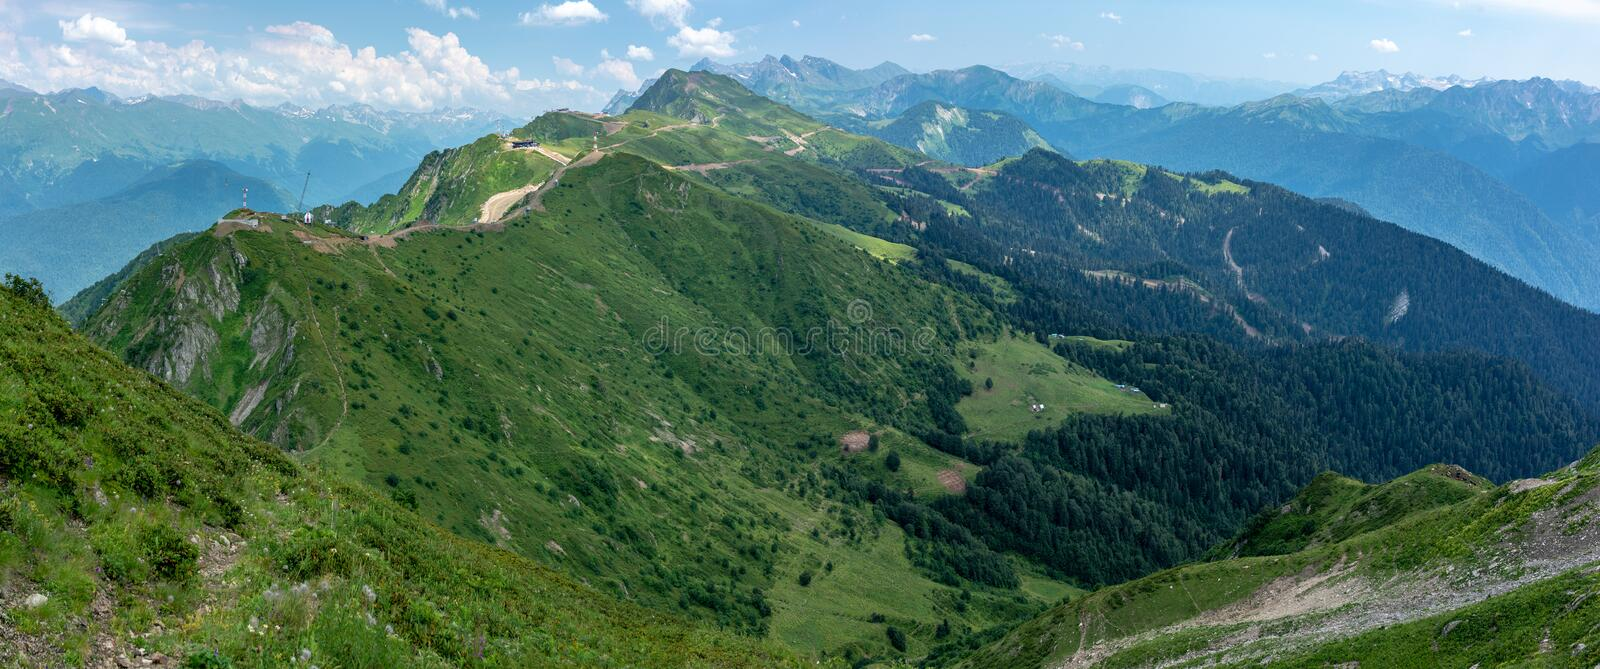 Panoramic view of the mountain range with cable cars and Green Valley. Caucasus, Russia royalty free stock photo